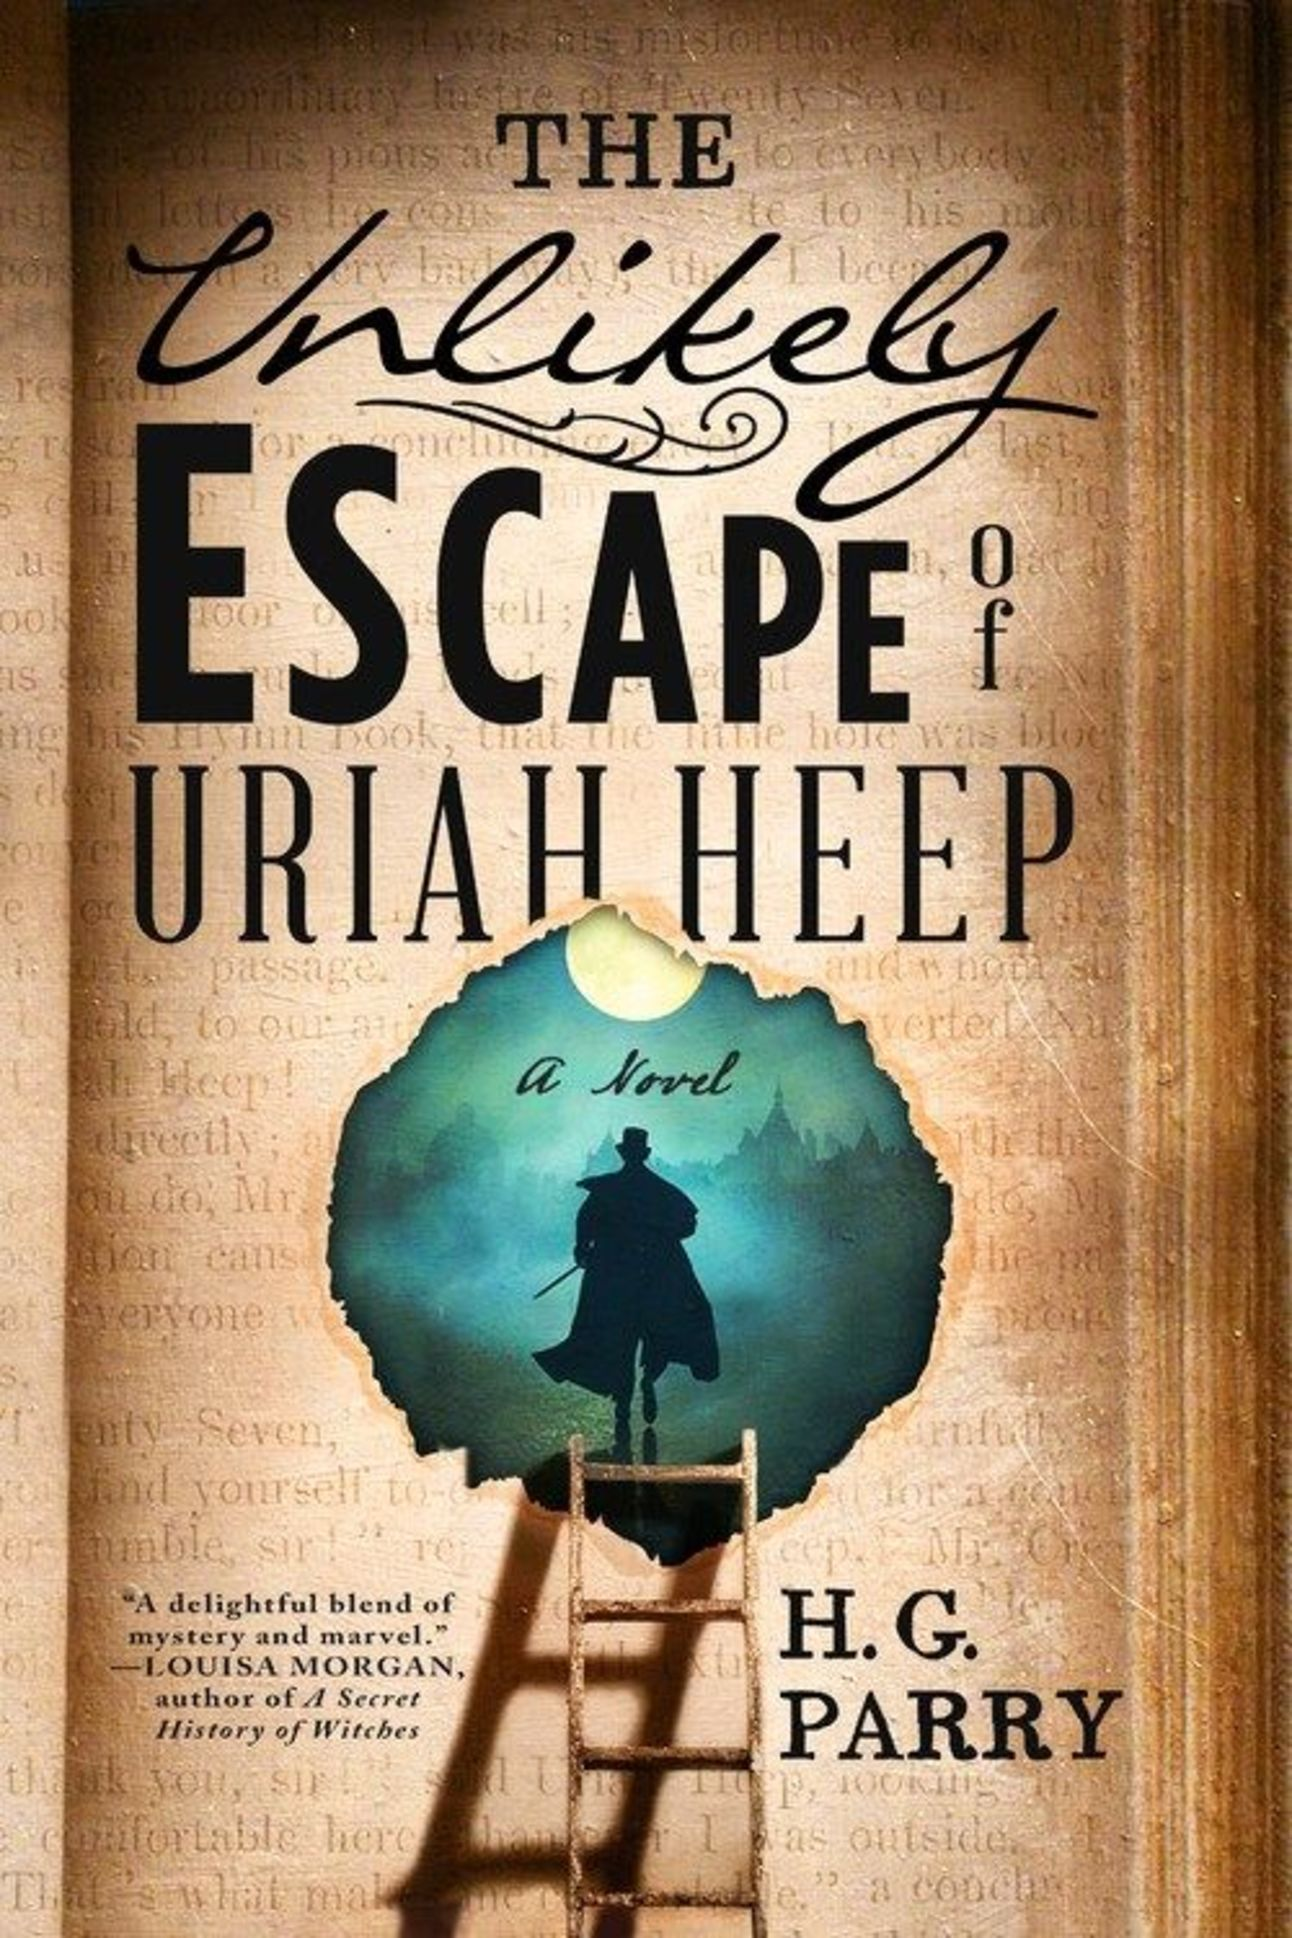 unlikely-escape-of-uriah-heep